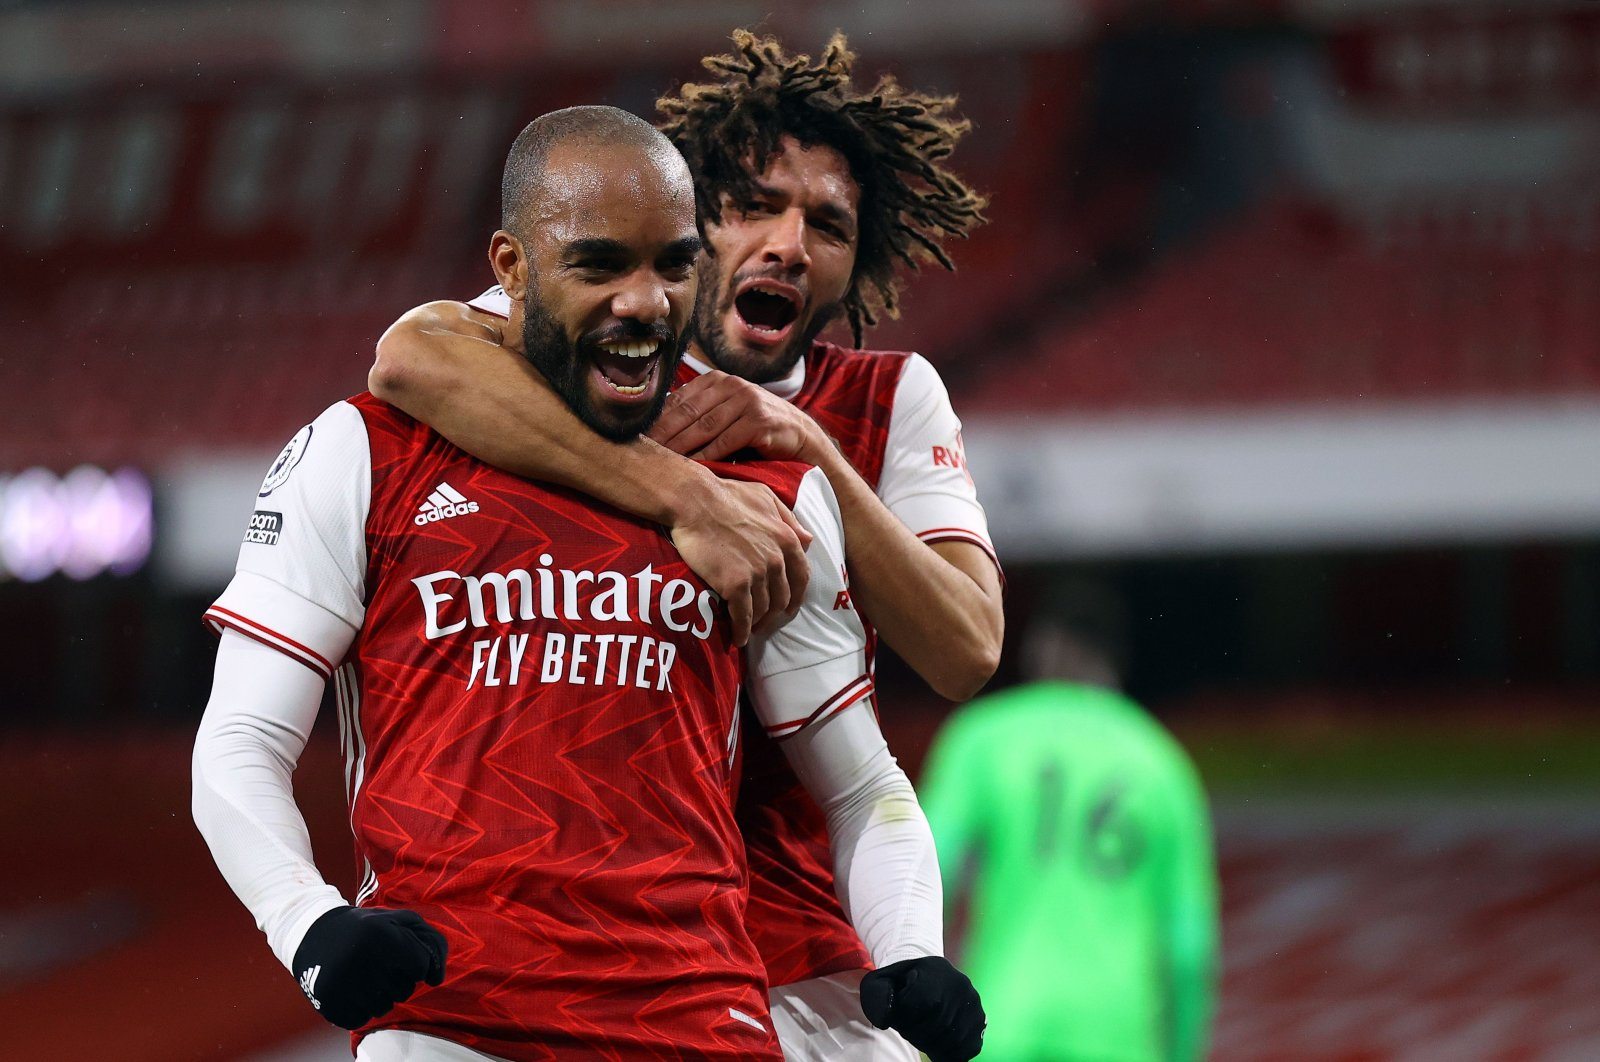 Arsenal's Alexandre Lacazette (L) and Mohamed Elneny celebrate a goal during the Premier League match against Chelsea at the Emirates Stadium in London, Britain, Dec. 26, 2020. (AFP Photo)